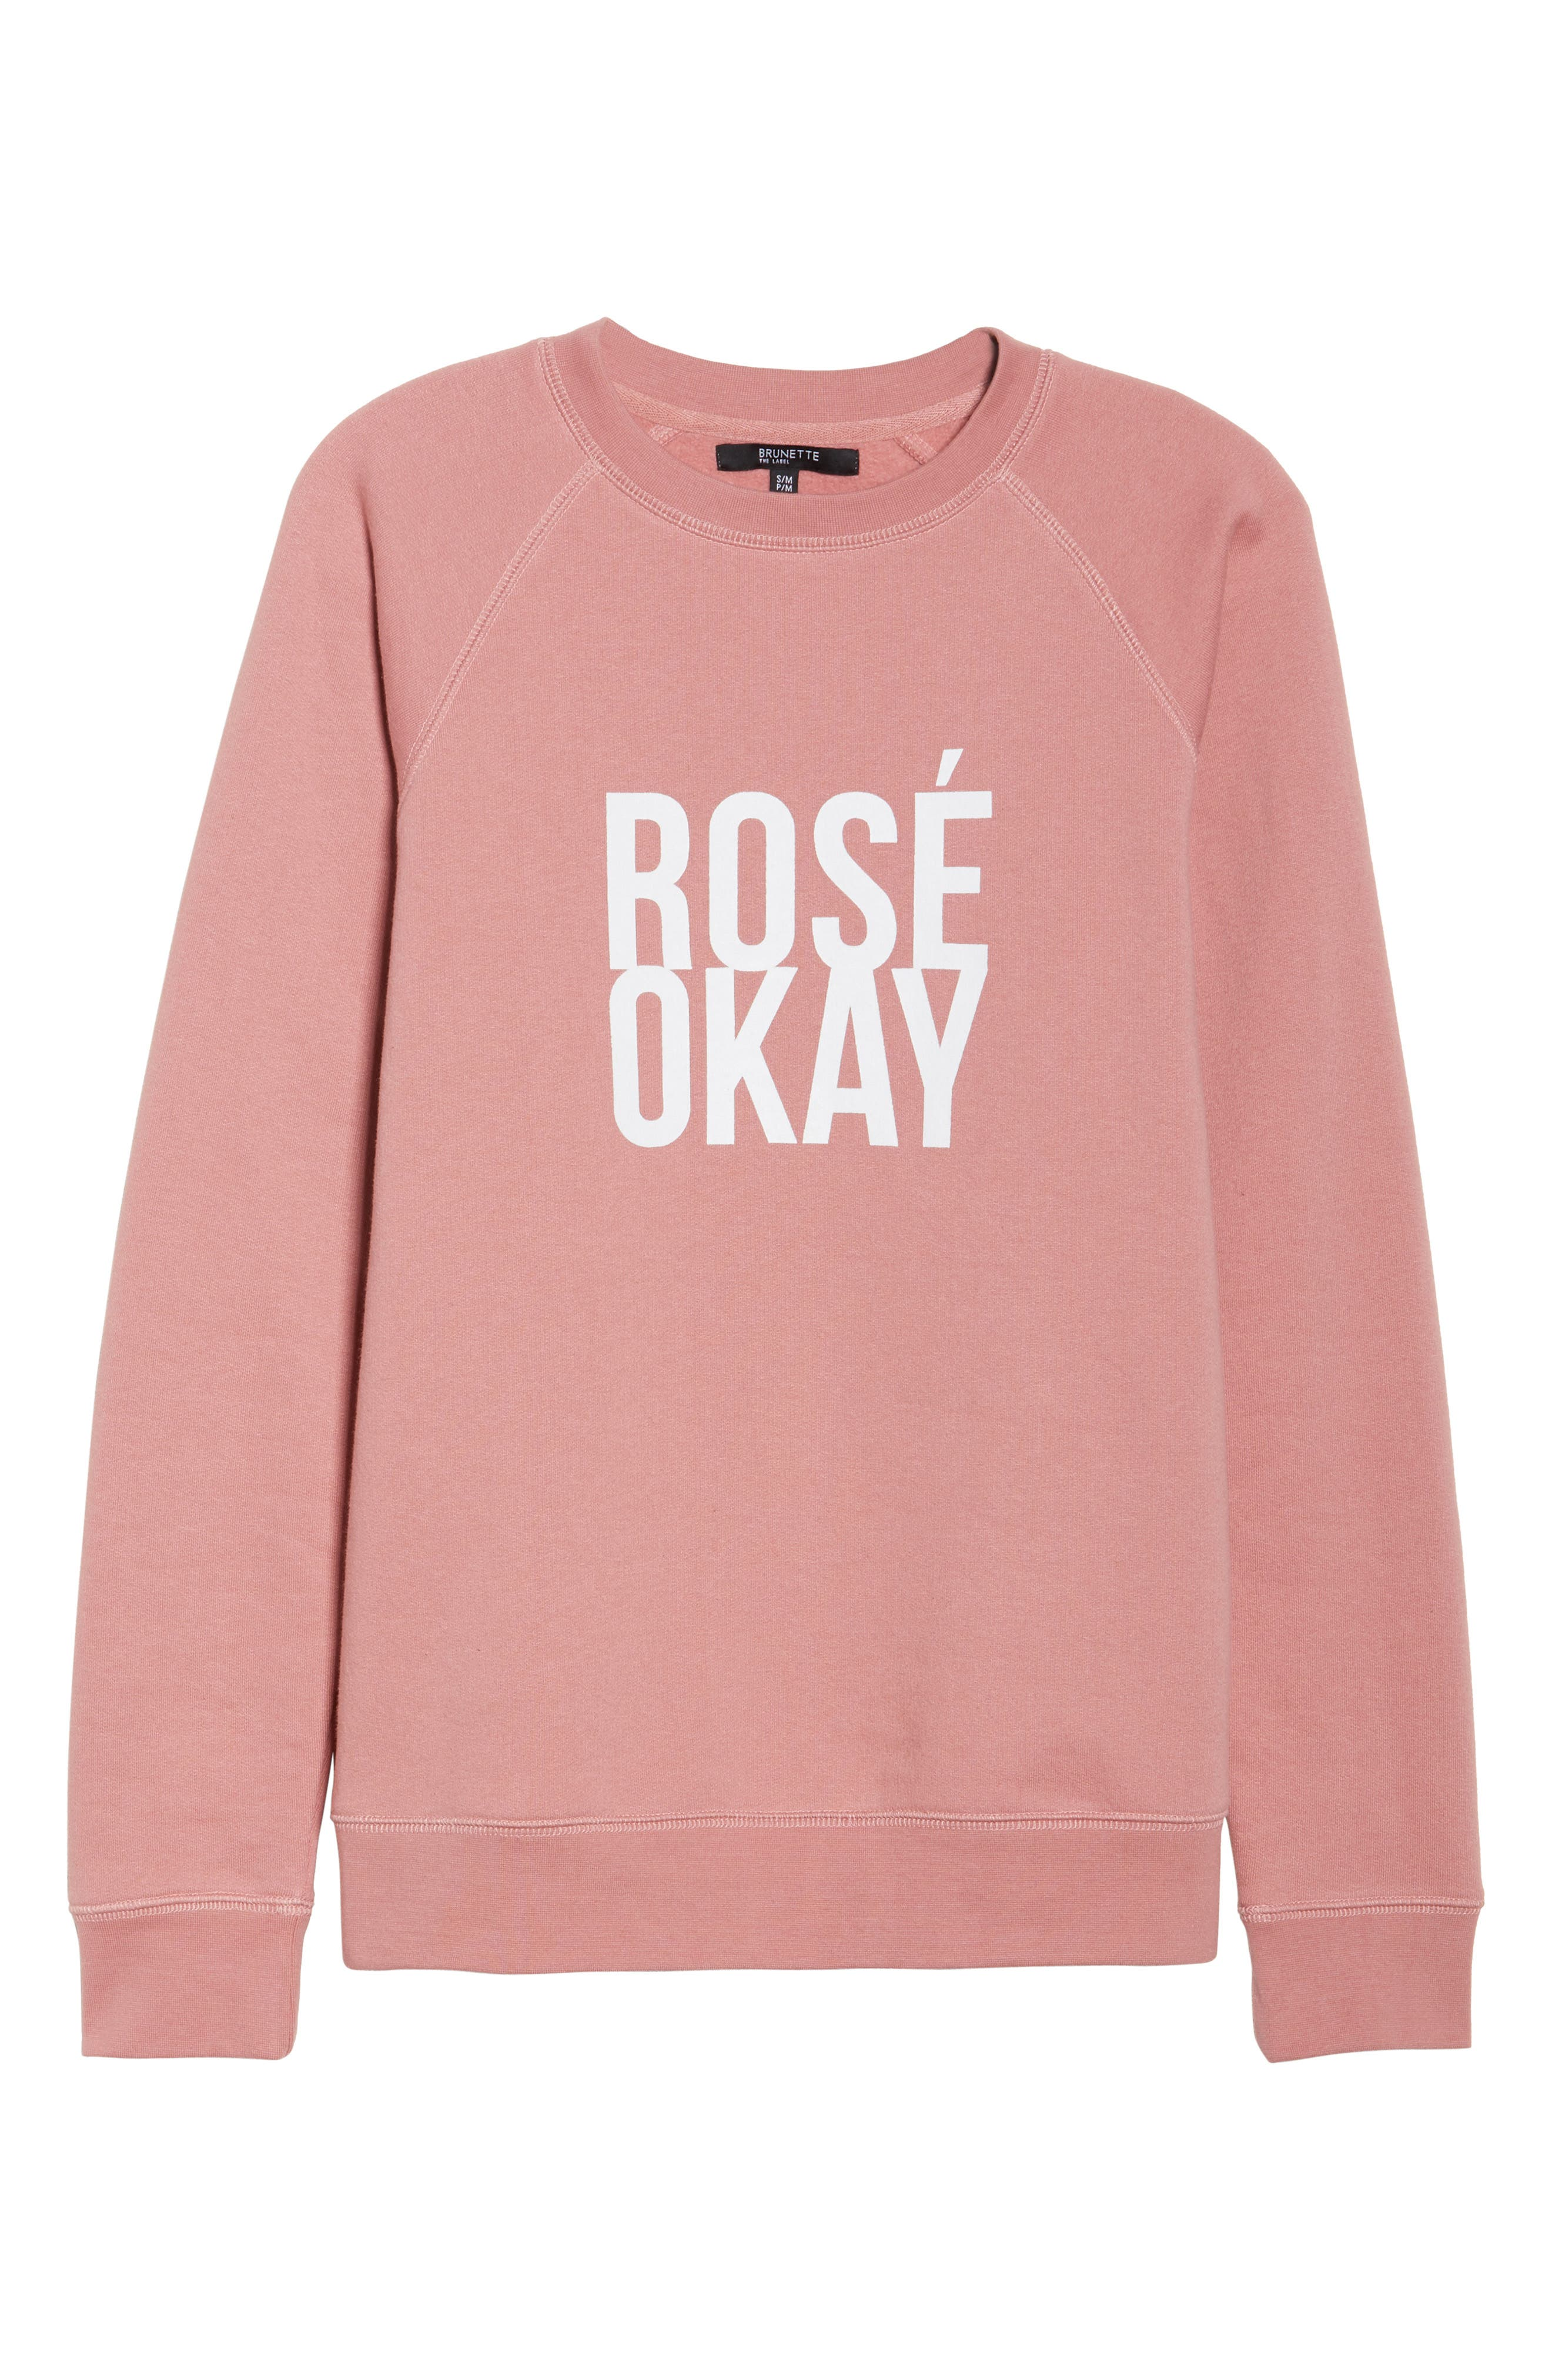 Rosé Okay Sweatshirt,                             Alternate thumbnail 4, color,                             Dusty Rose